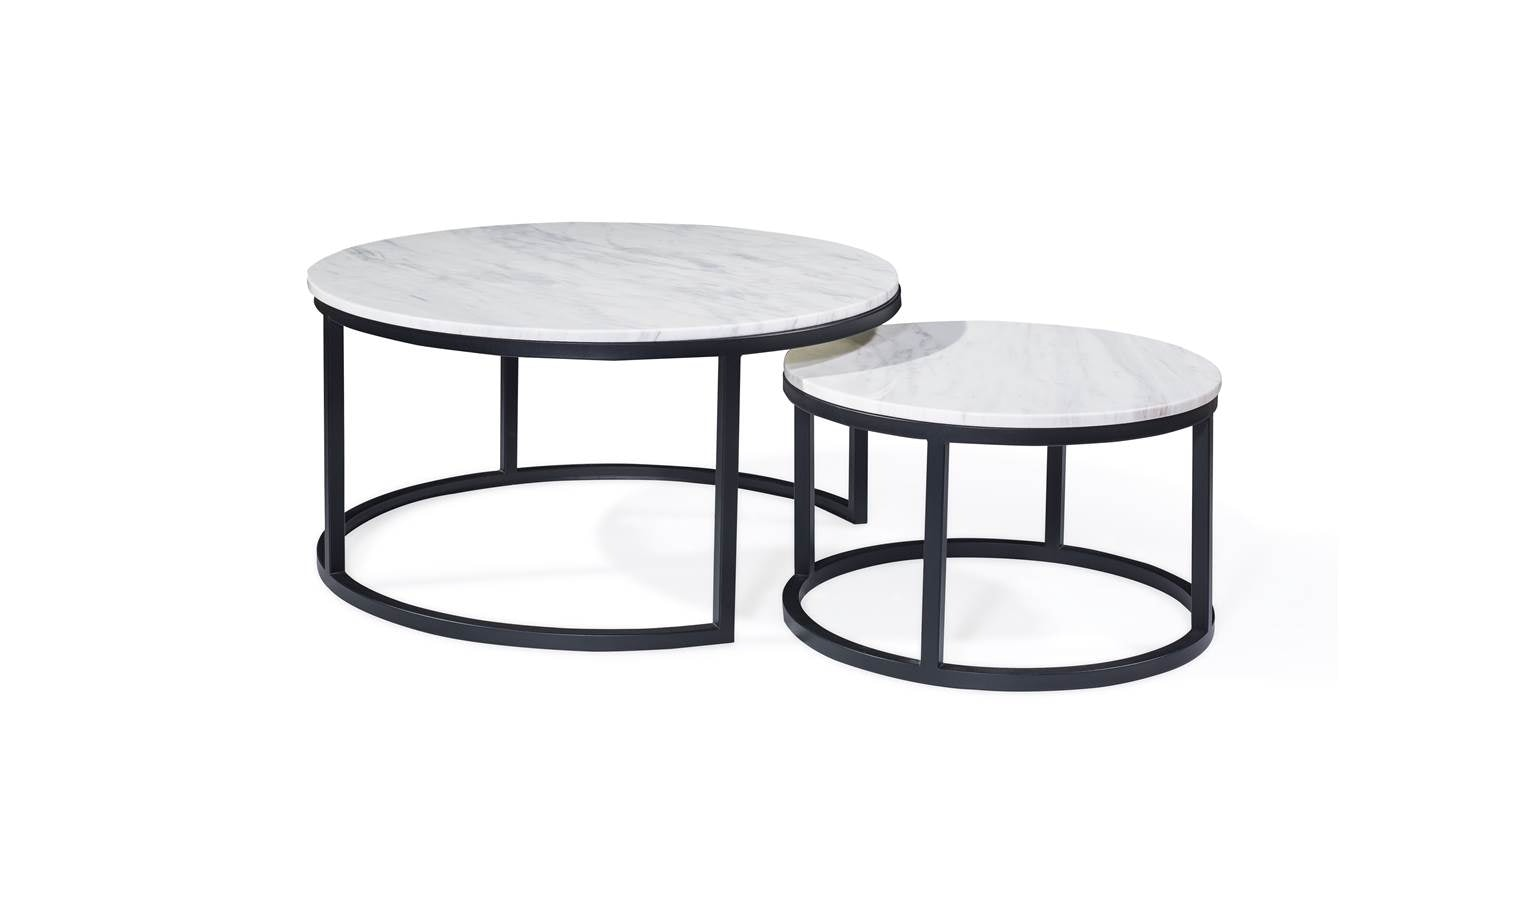 Lifestyle Acadian Marble Coffee Table Small Harvey Norman